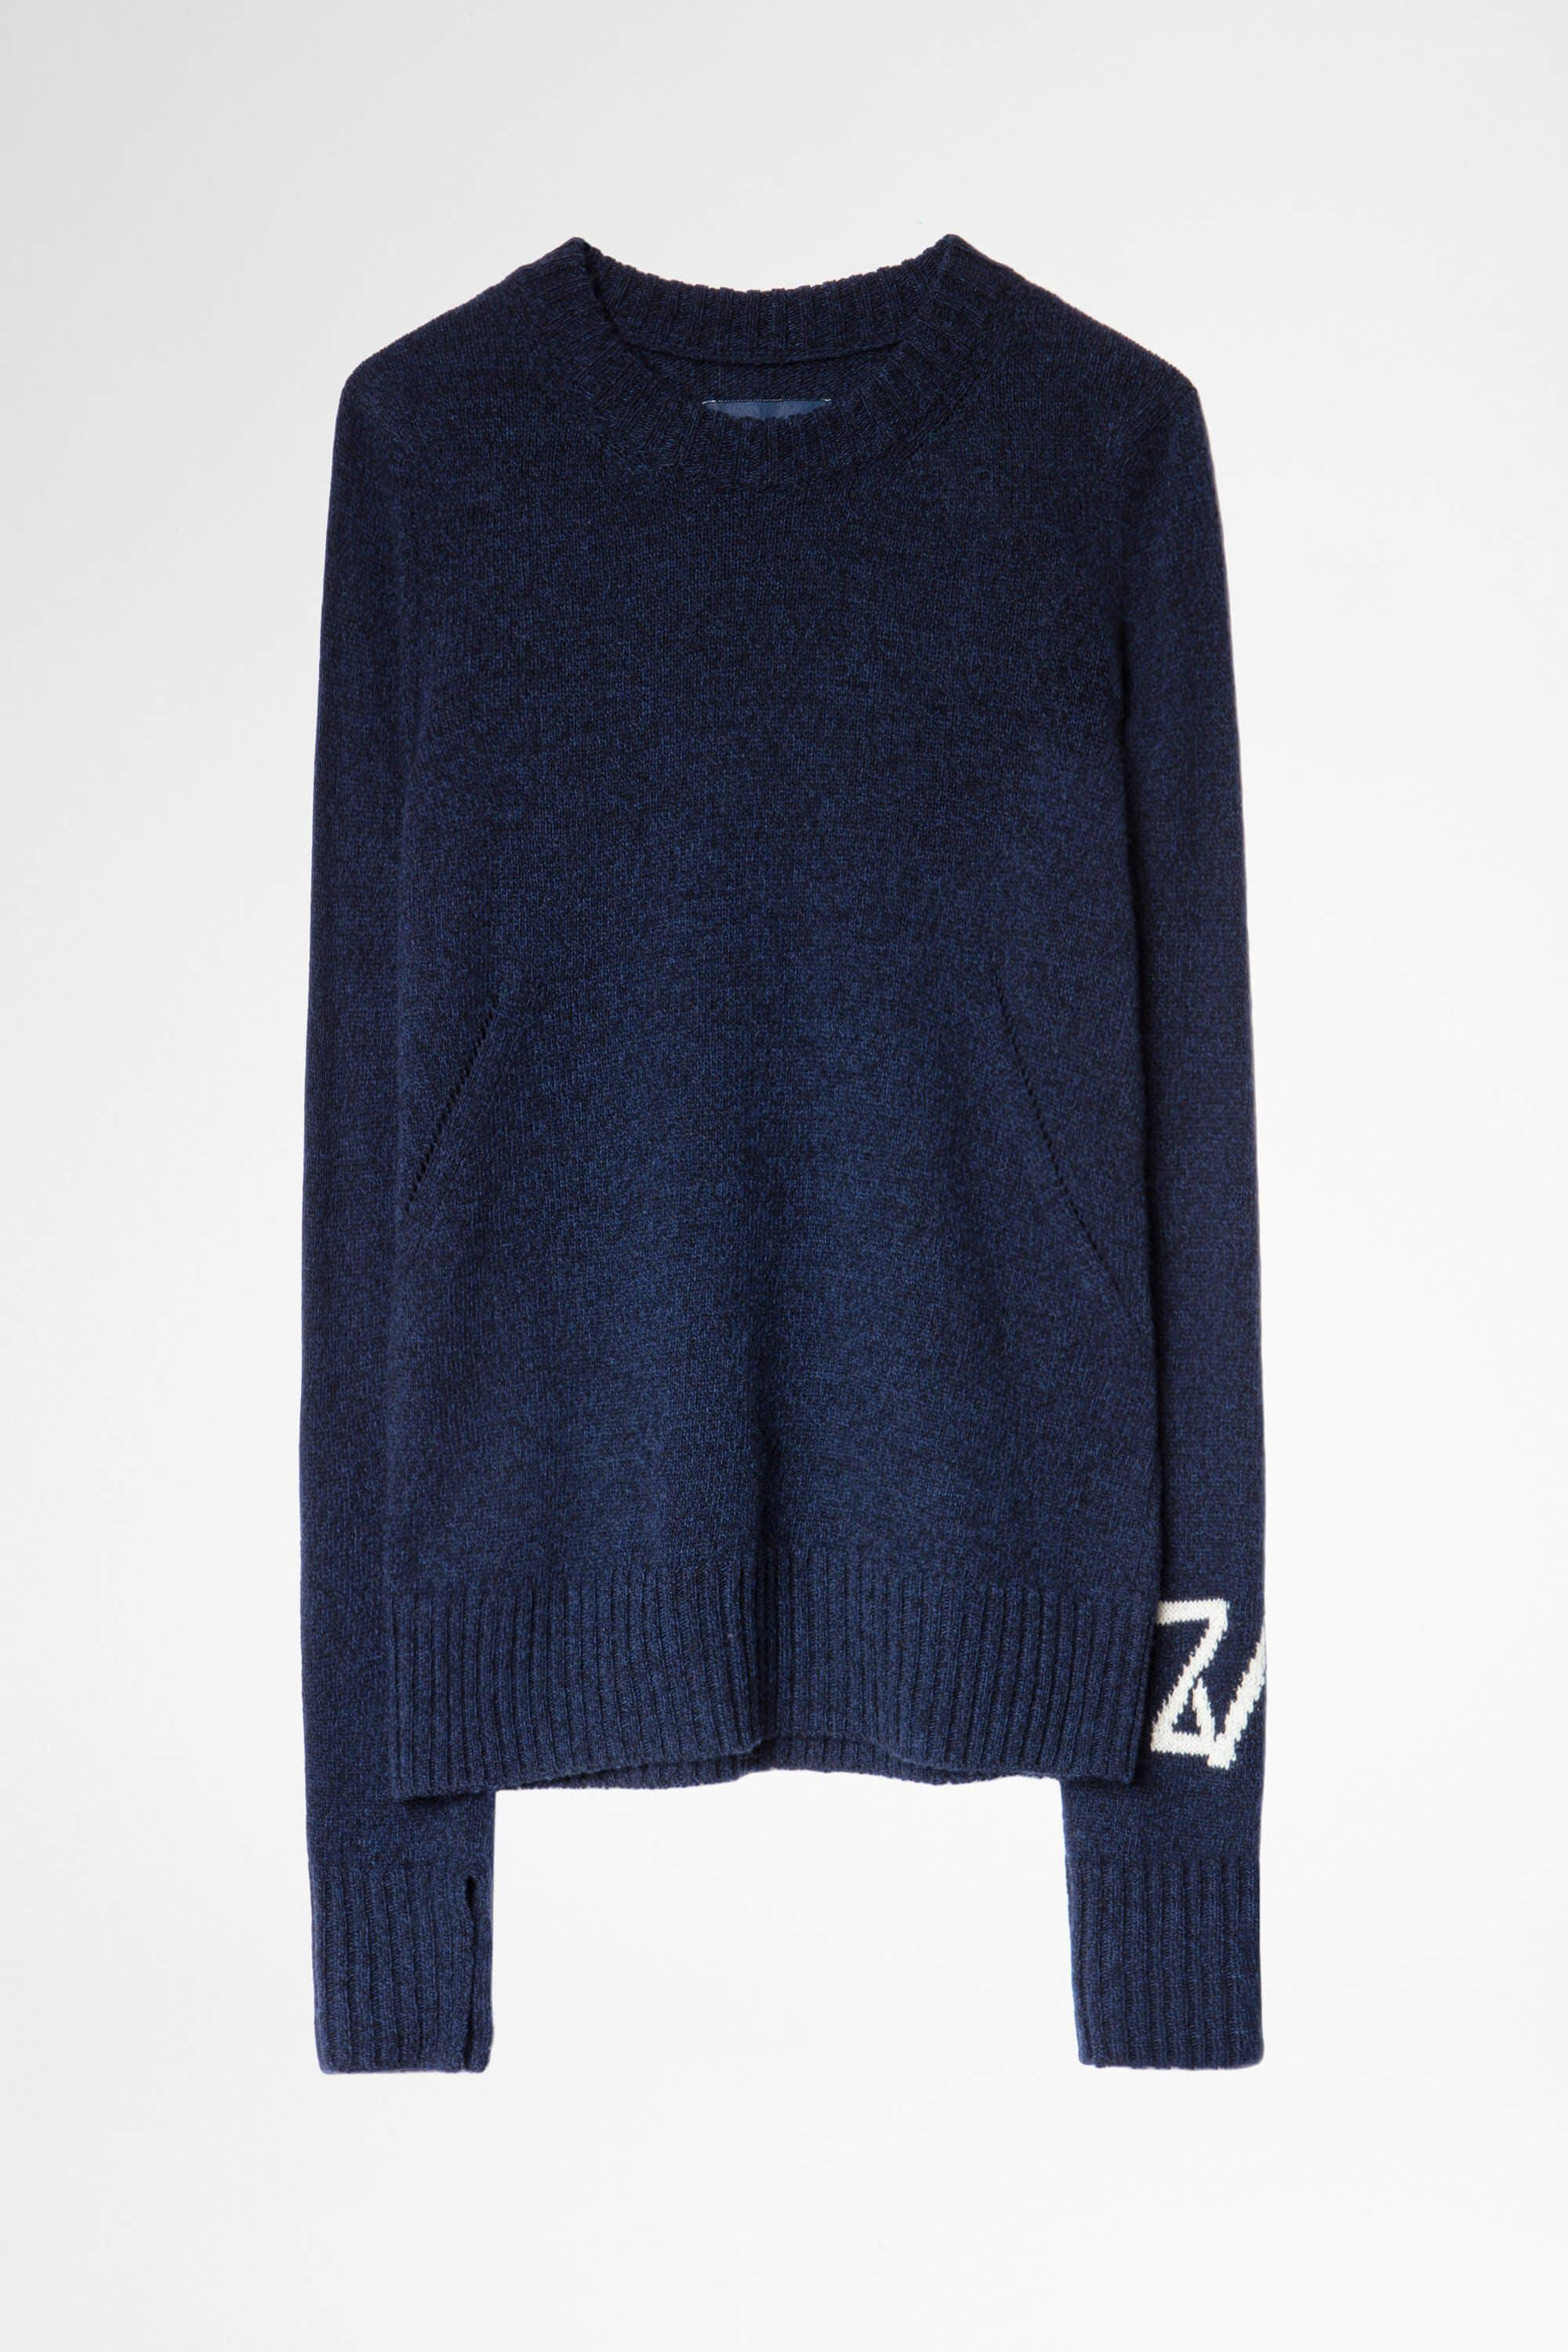 Source Recycled Cashmere Sweater 4